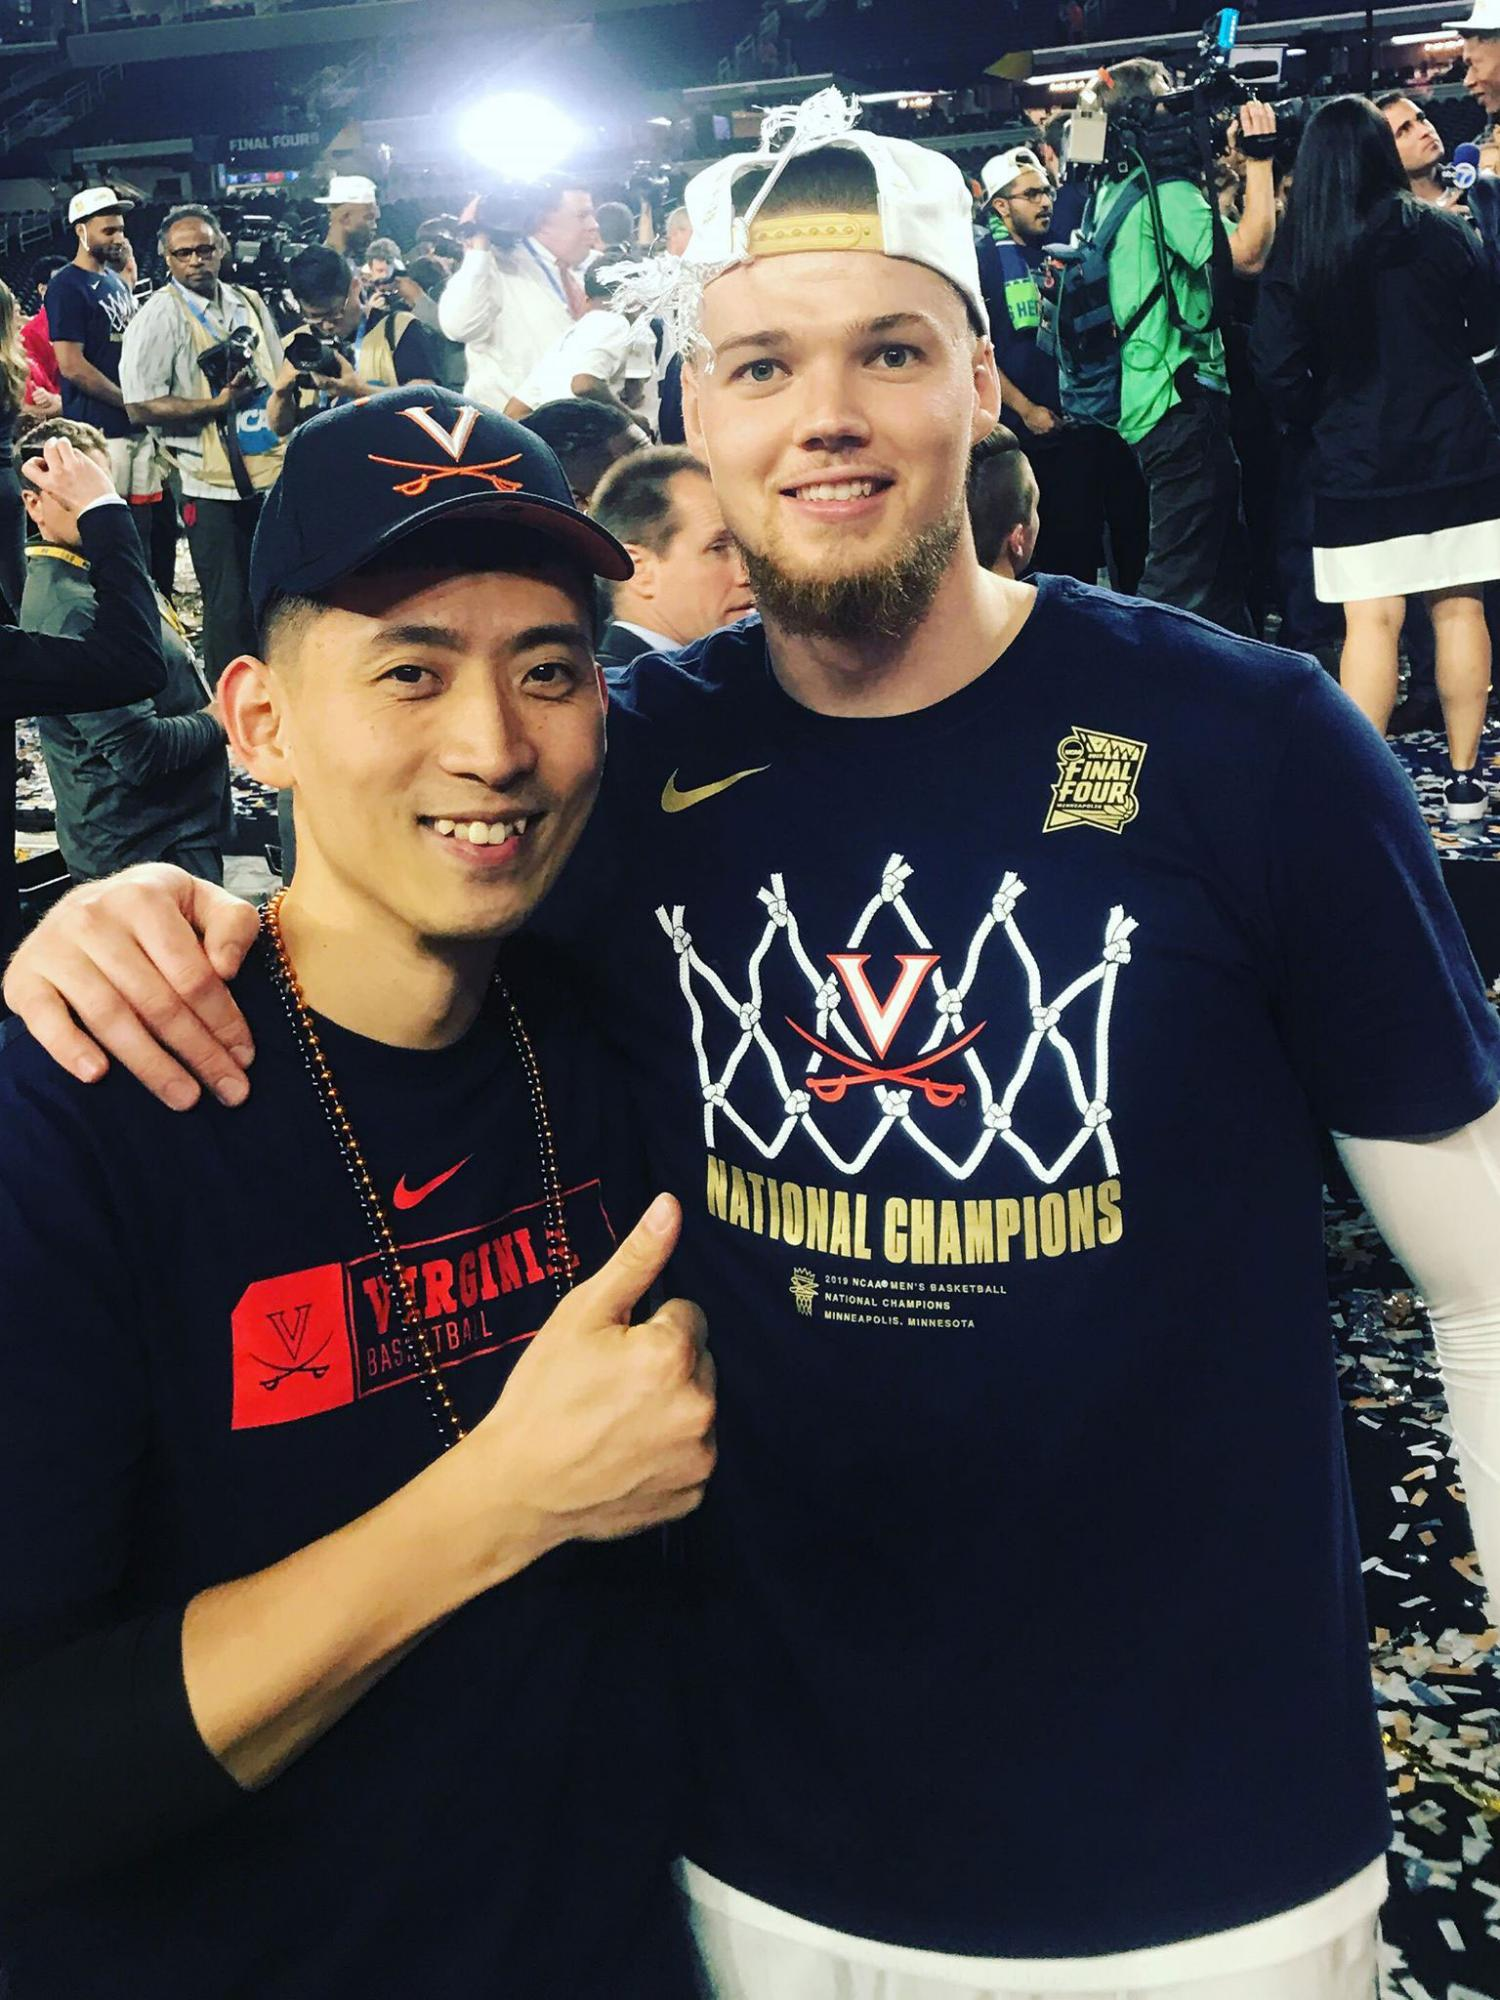 """I didn't cry at the games, but deep inside my heart, the emotions were so strong, especially when we gave each other a big hug after the championship game,"" Sy said. ""It was an amazing feeling."""